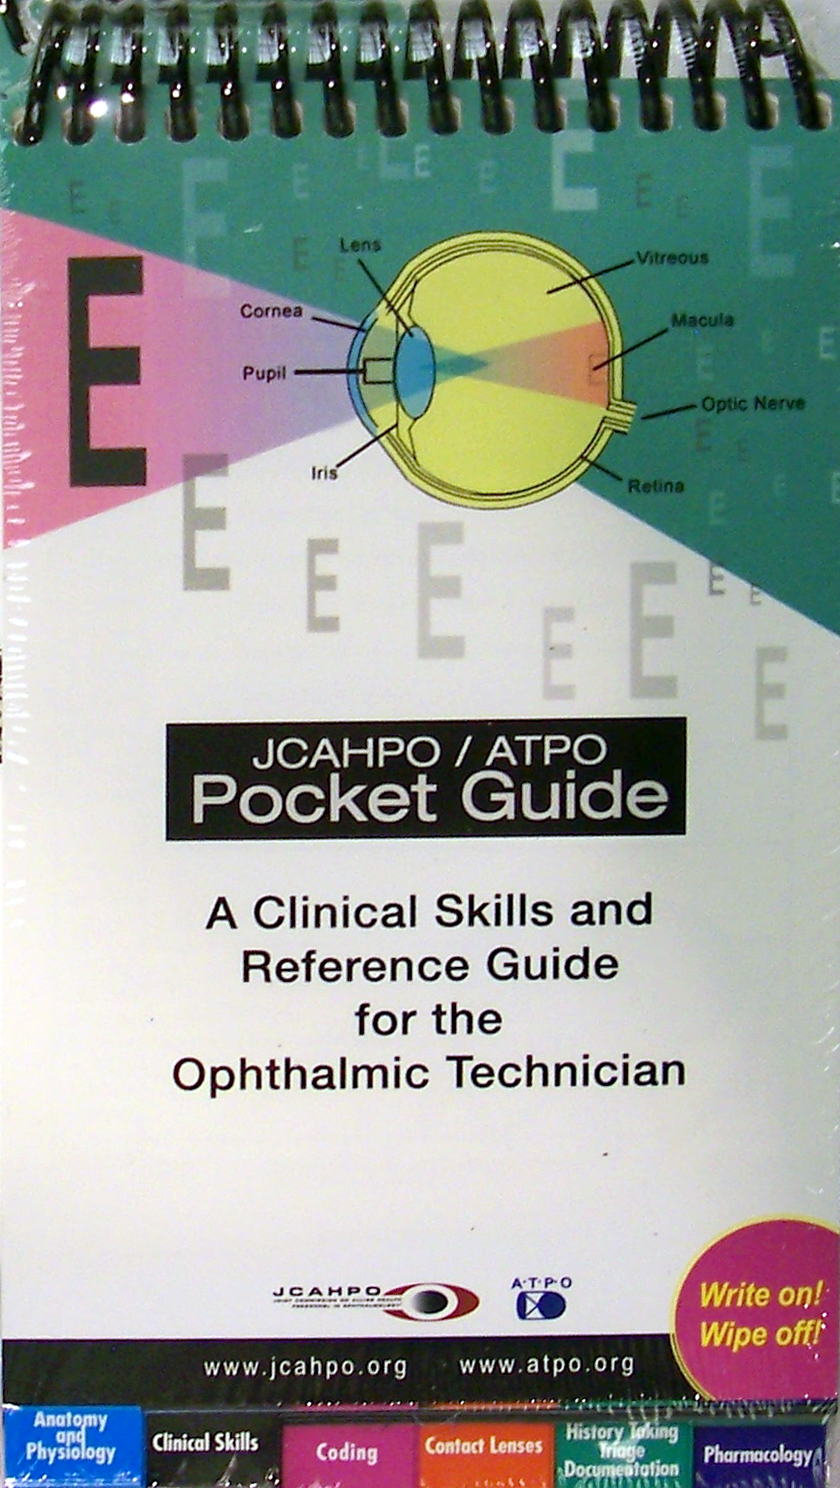 Jcahpo Atpo Pocket Guide Launches For Eye Care Professionals